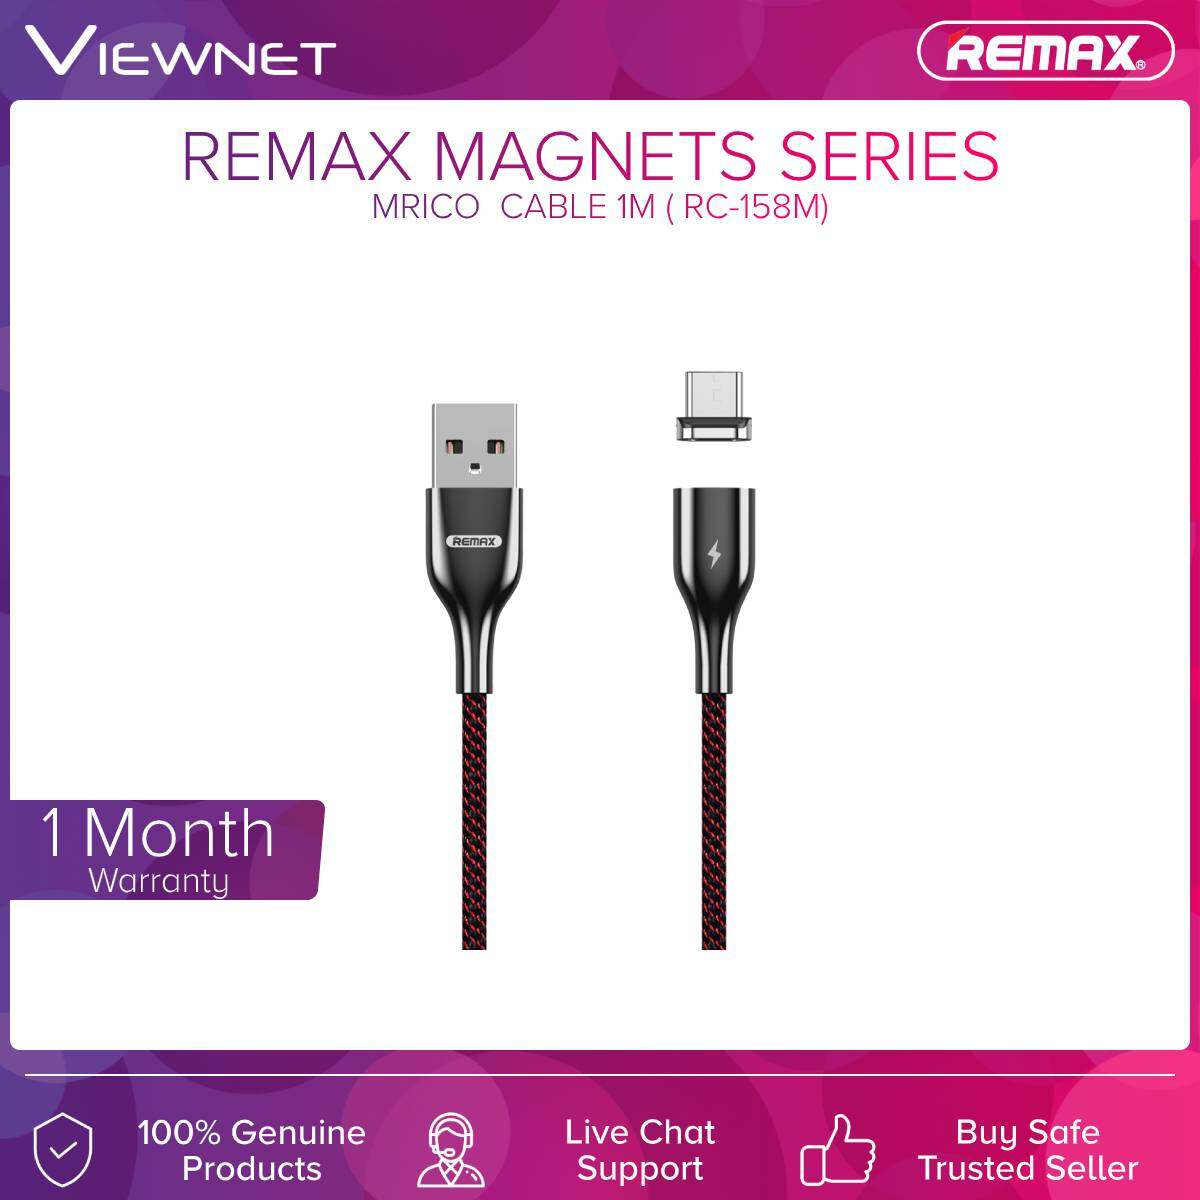 Remax (RC-158M) Micro Cable Magnet Series